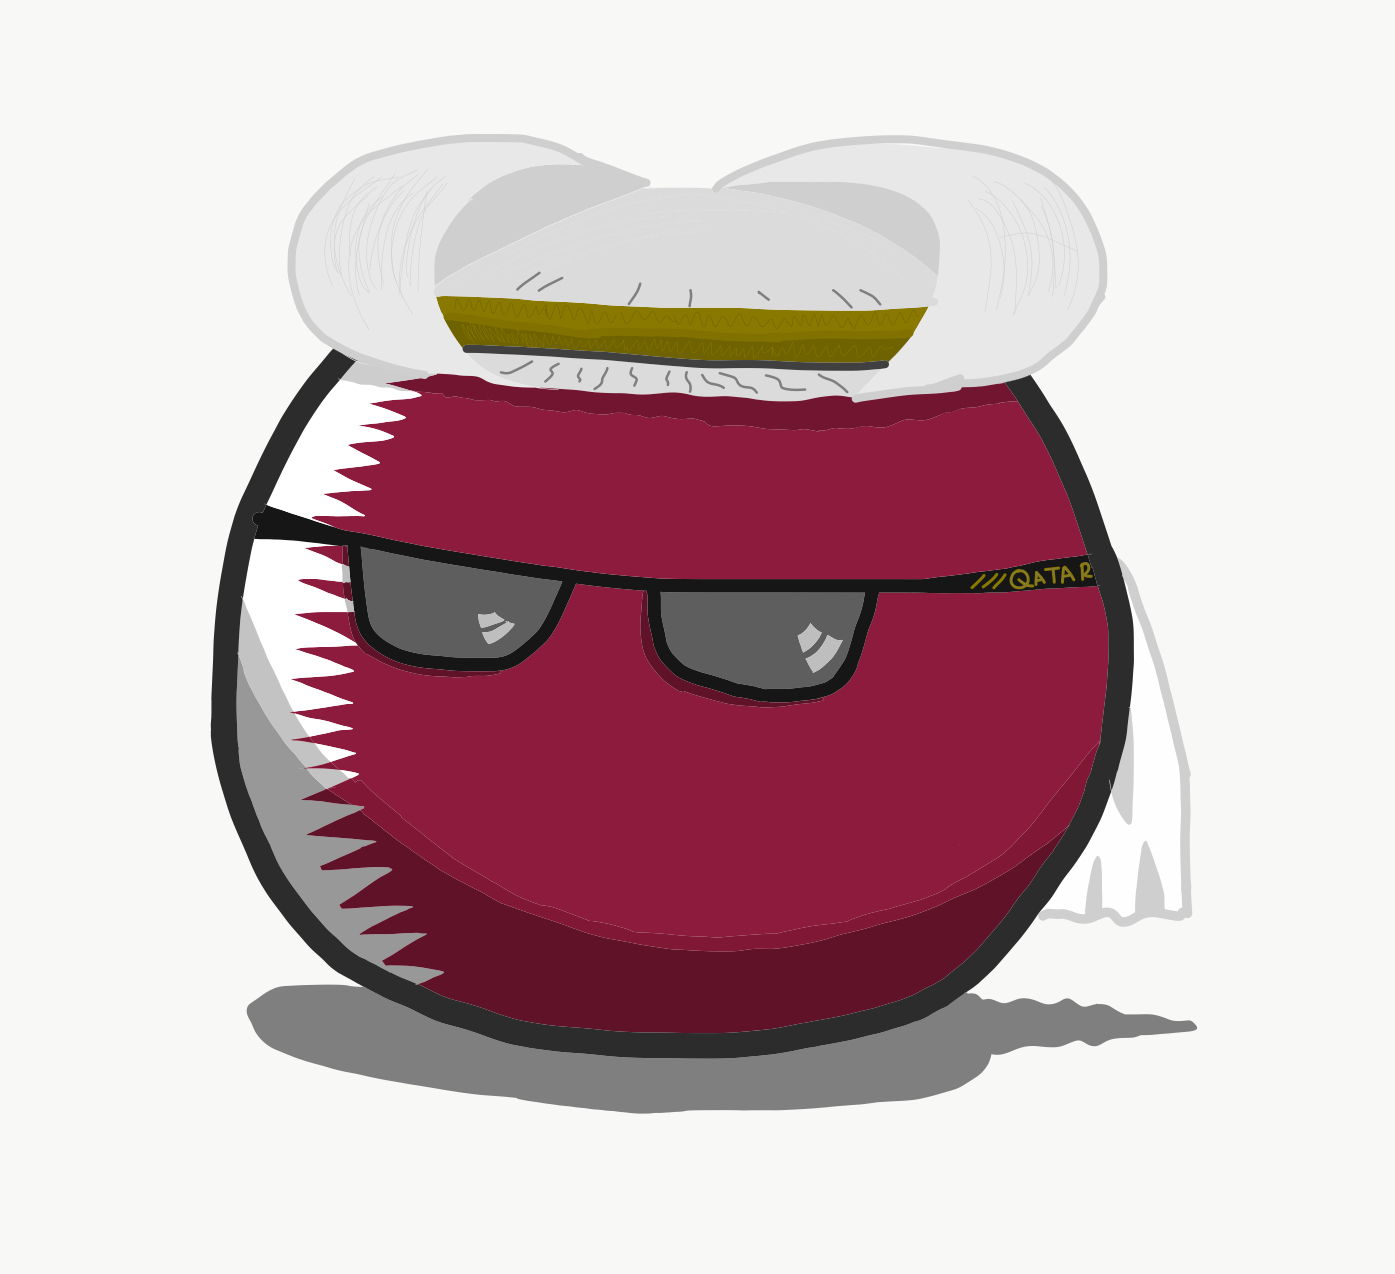 Qatarball | Polandball Wiki | FANDOM powered by Wikia